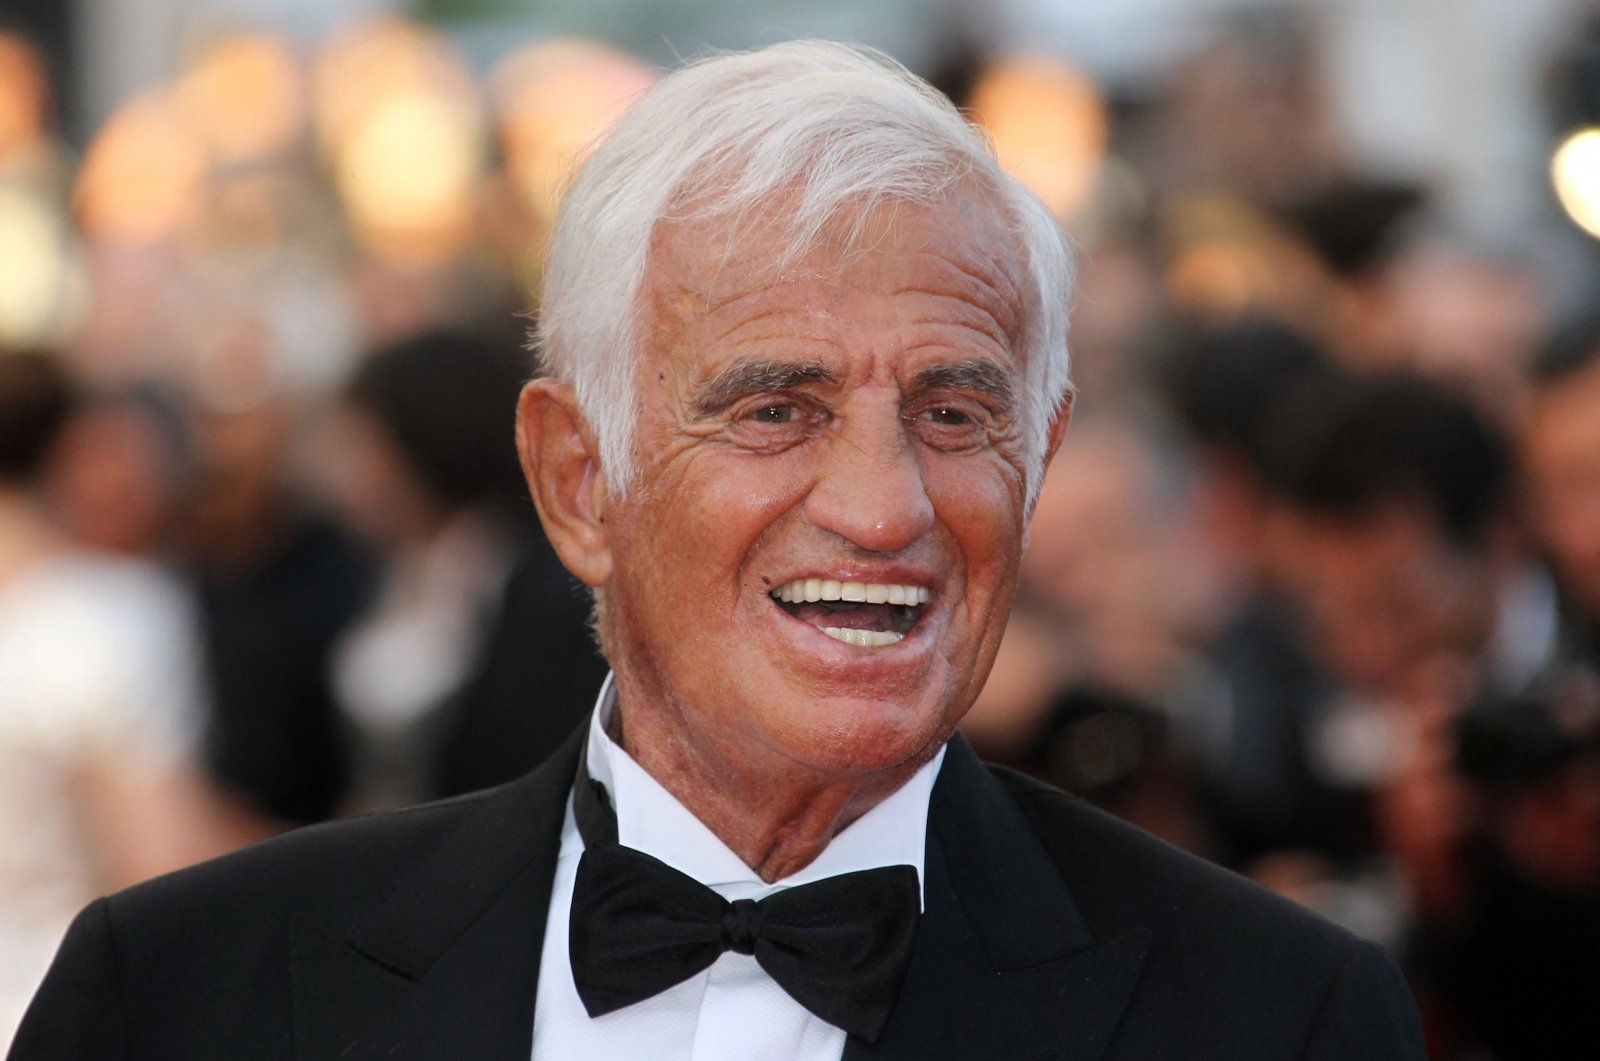 """French actor Jean-Paul Belmondo poses on the red carpet before a ceremony in his honor and the screening of """"The Beaver"""" presented out of competition at the 64th Cannes Film Festival in Cannes, southern France, May 17, 2011. (AFP File Photo)"""